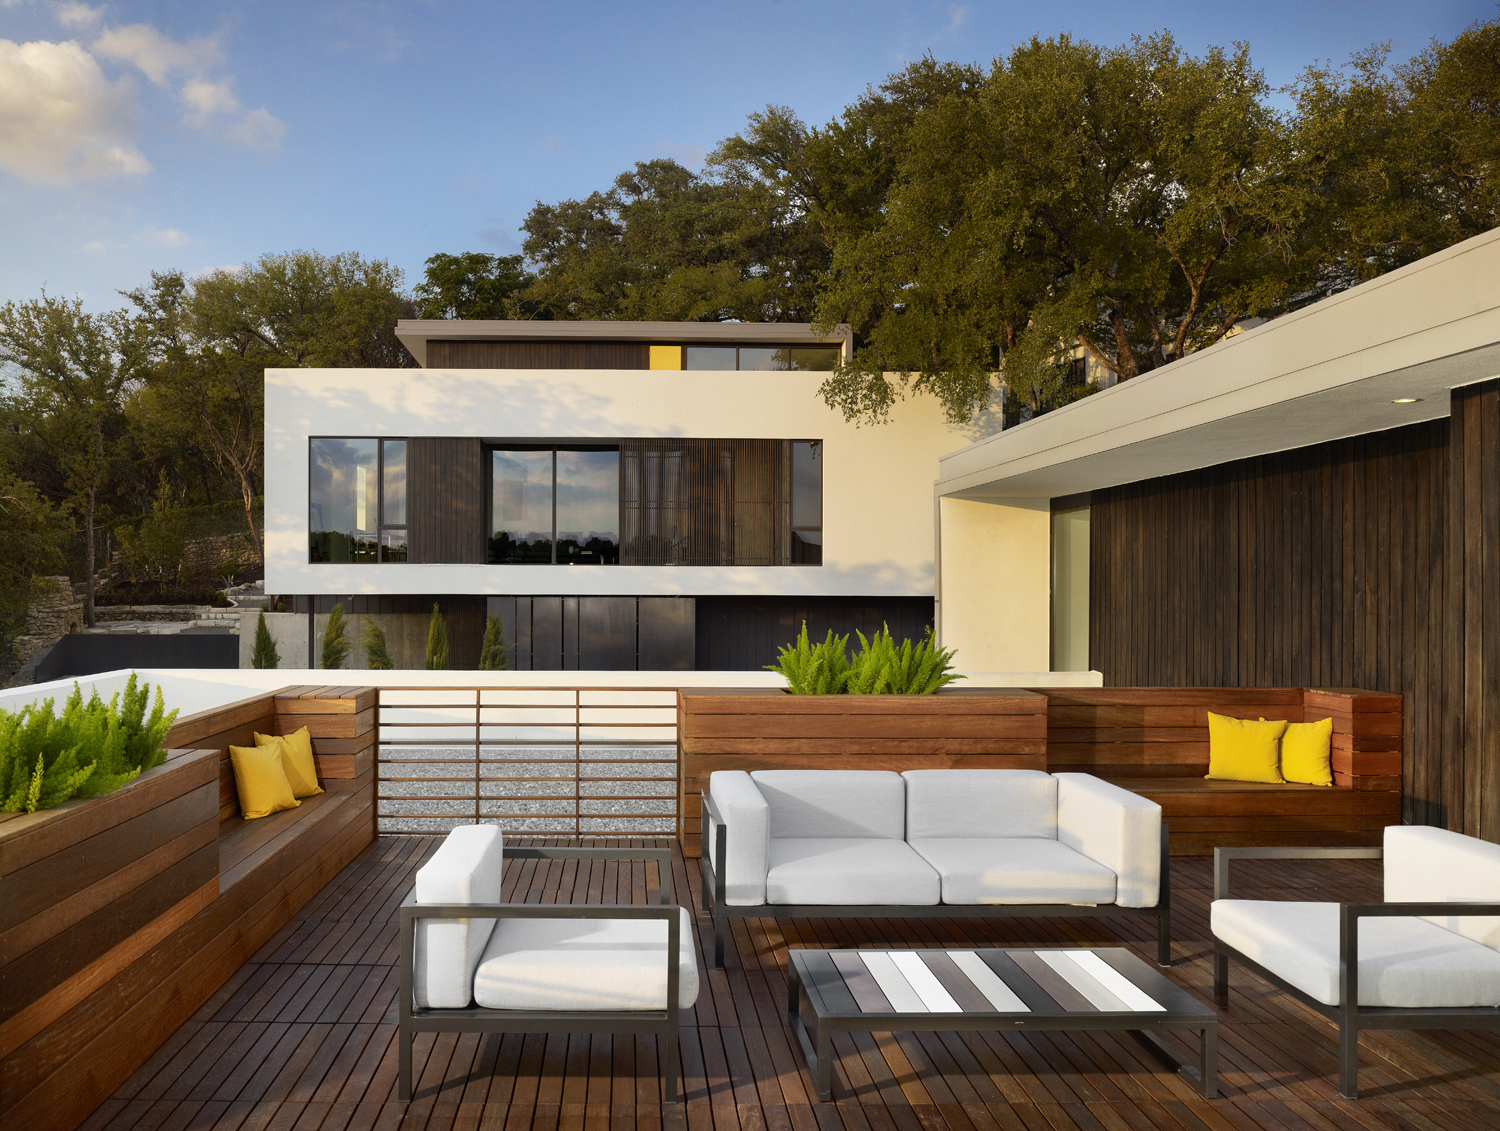 The Best Residential General Contractors in Austin - Austin Architects